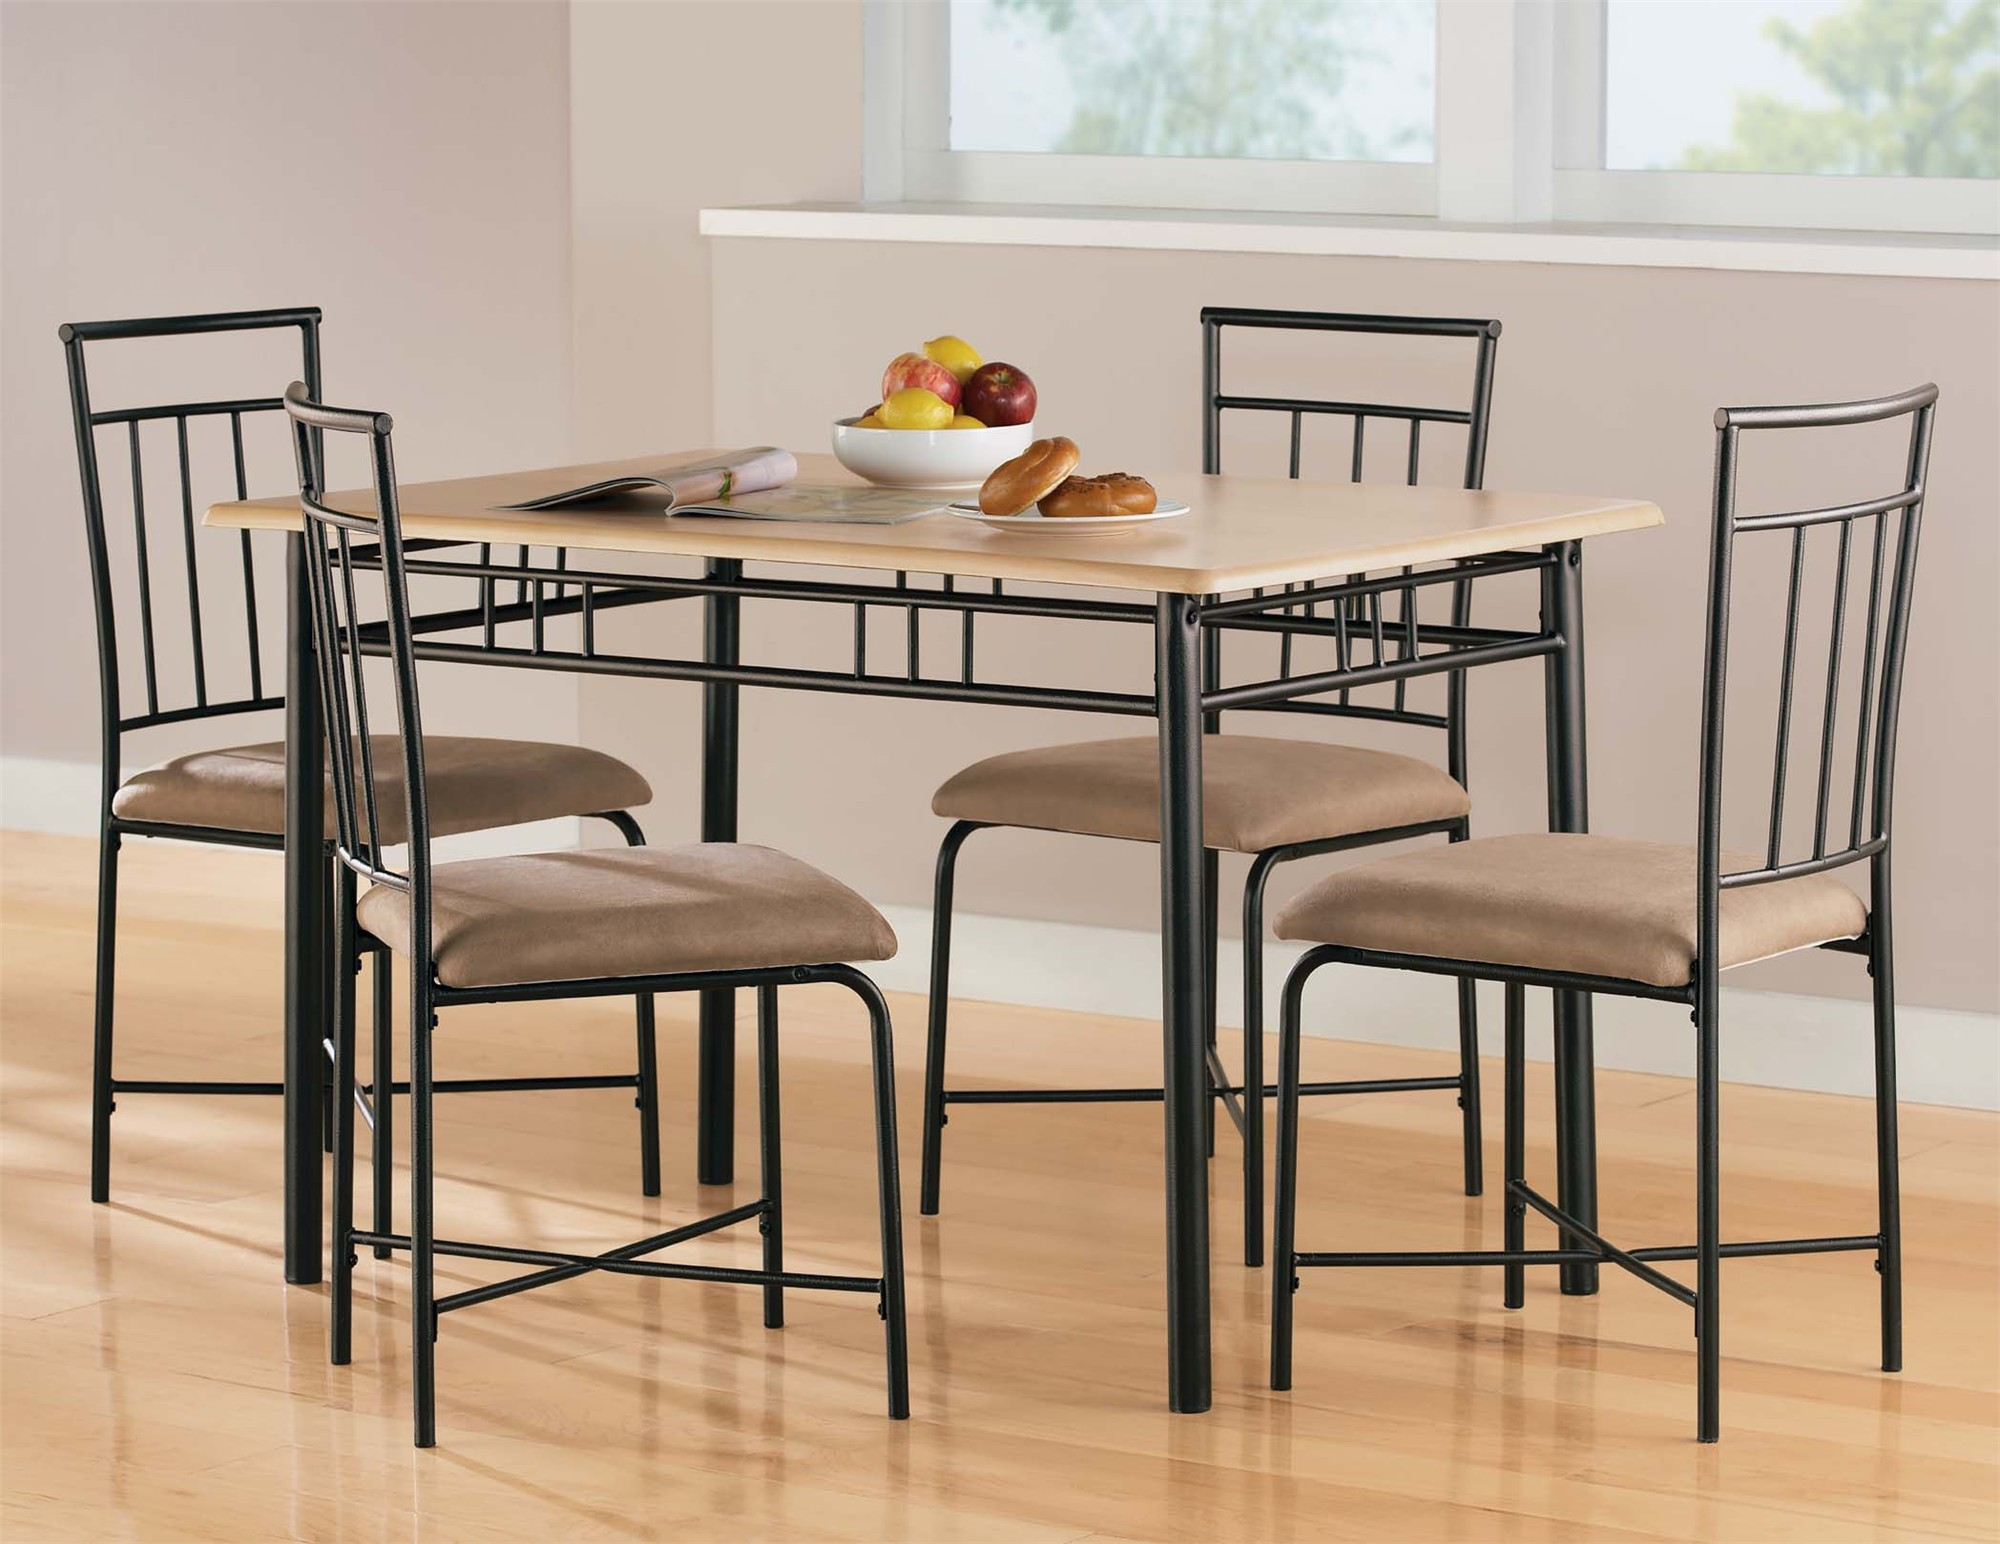 The Different Types Of Dining Chairs